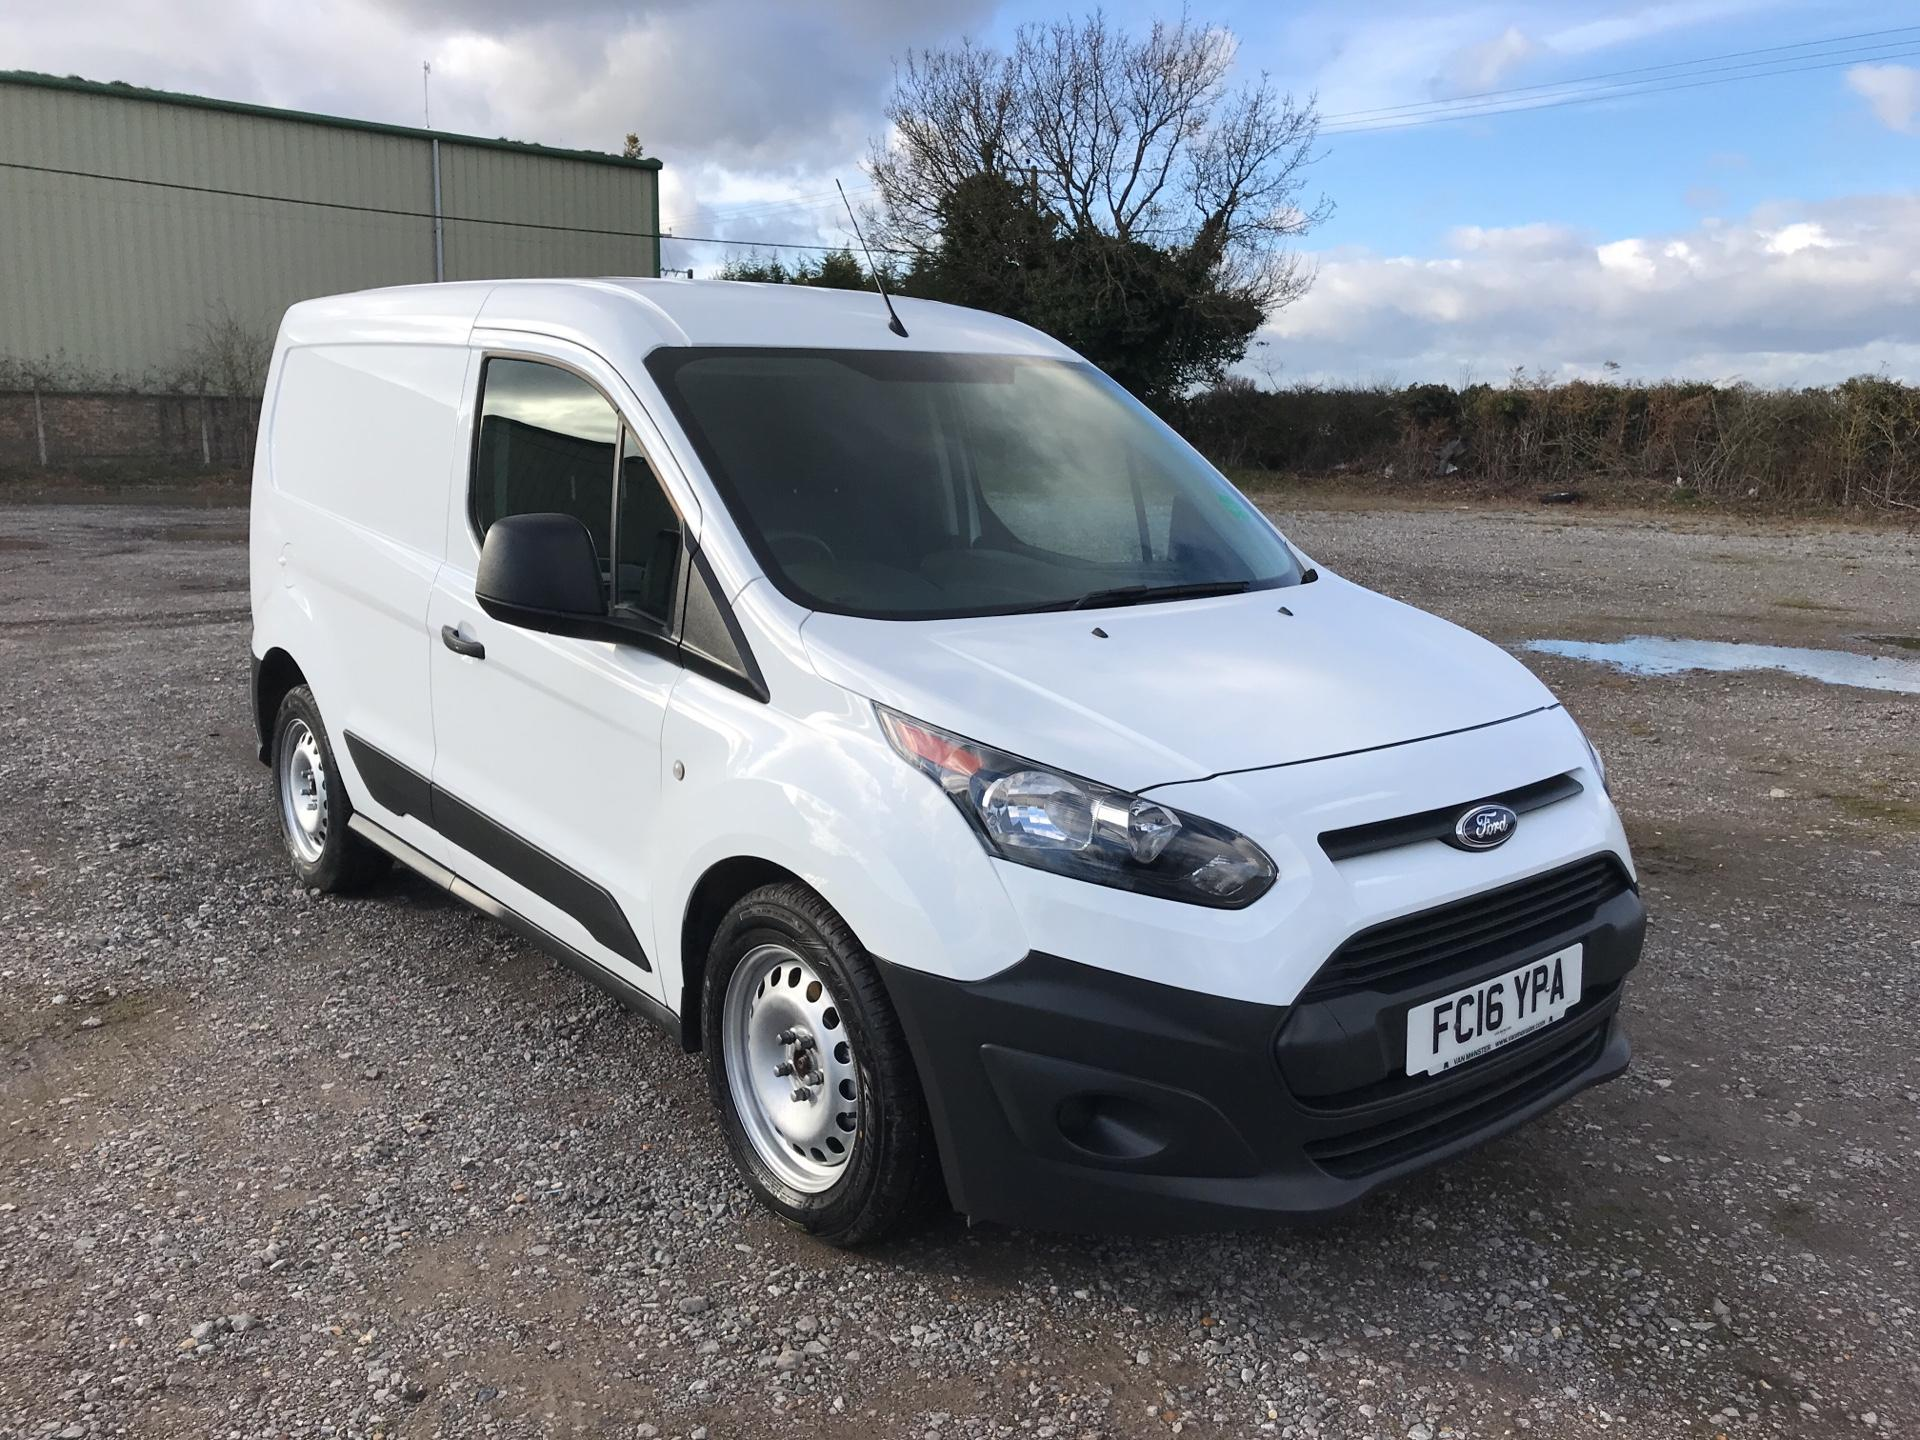 2016 Ford Transit Connect 220 L1 DIESEL 1.5 TDCI 75PS VAN EURO 6 (FC16YPA)